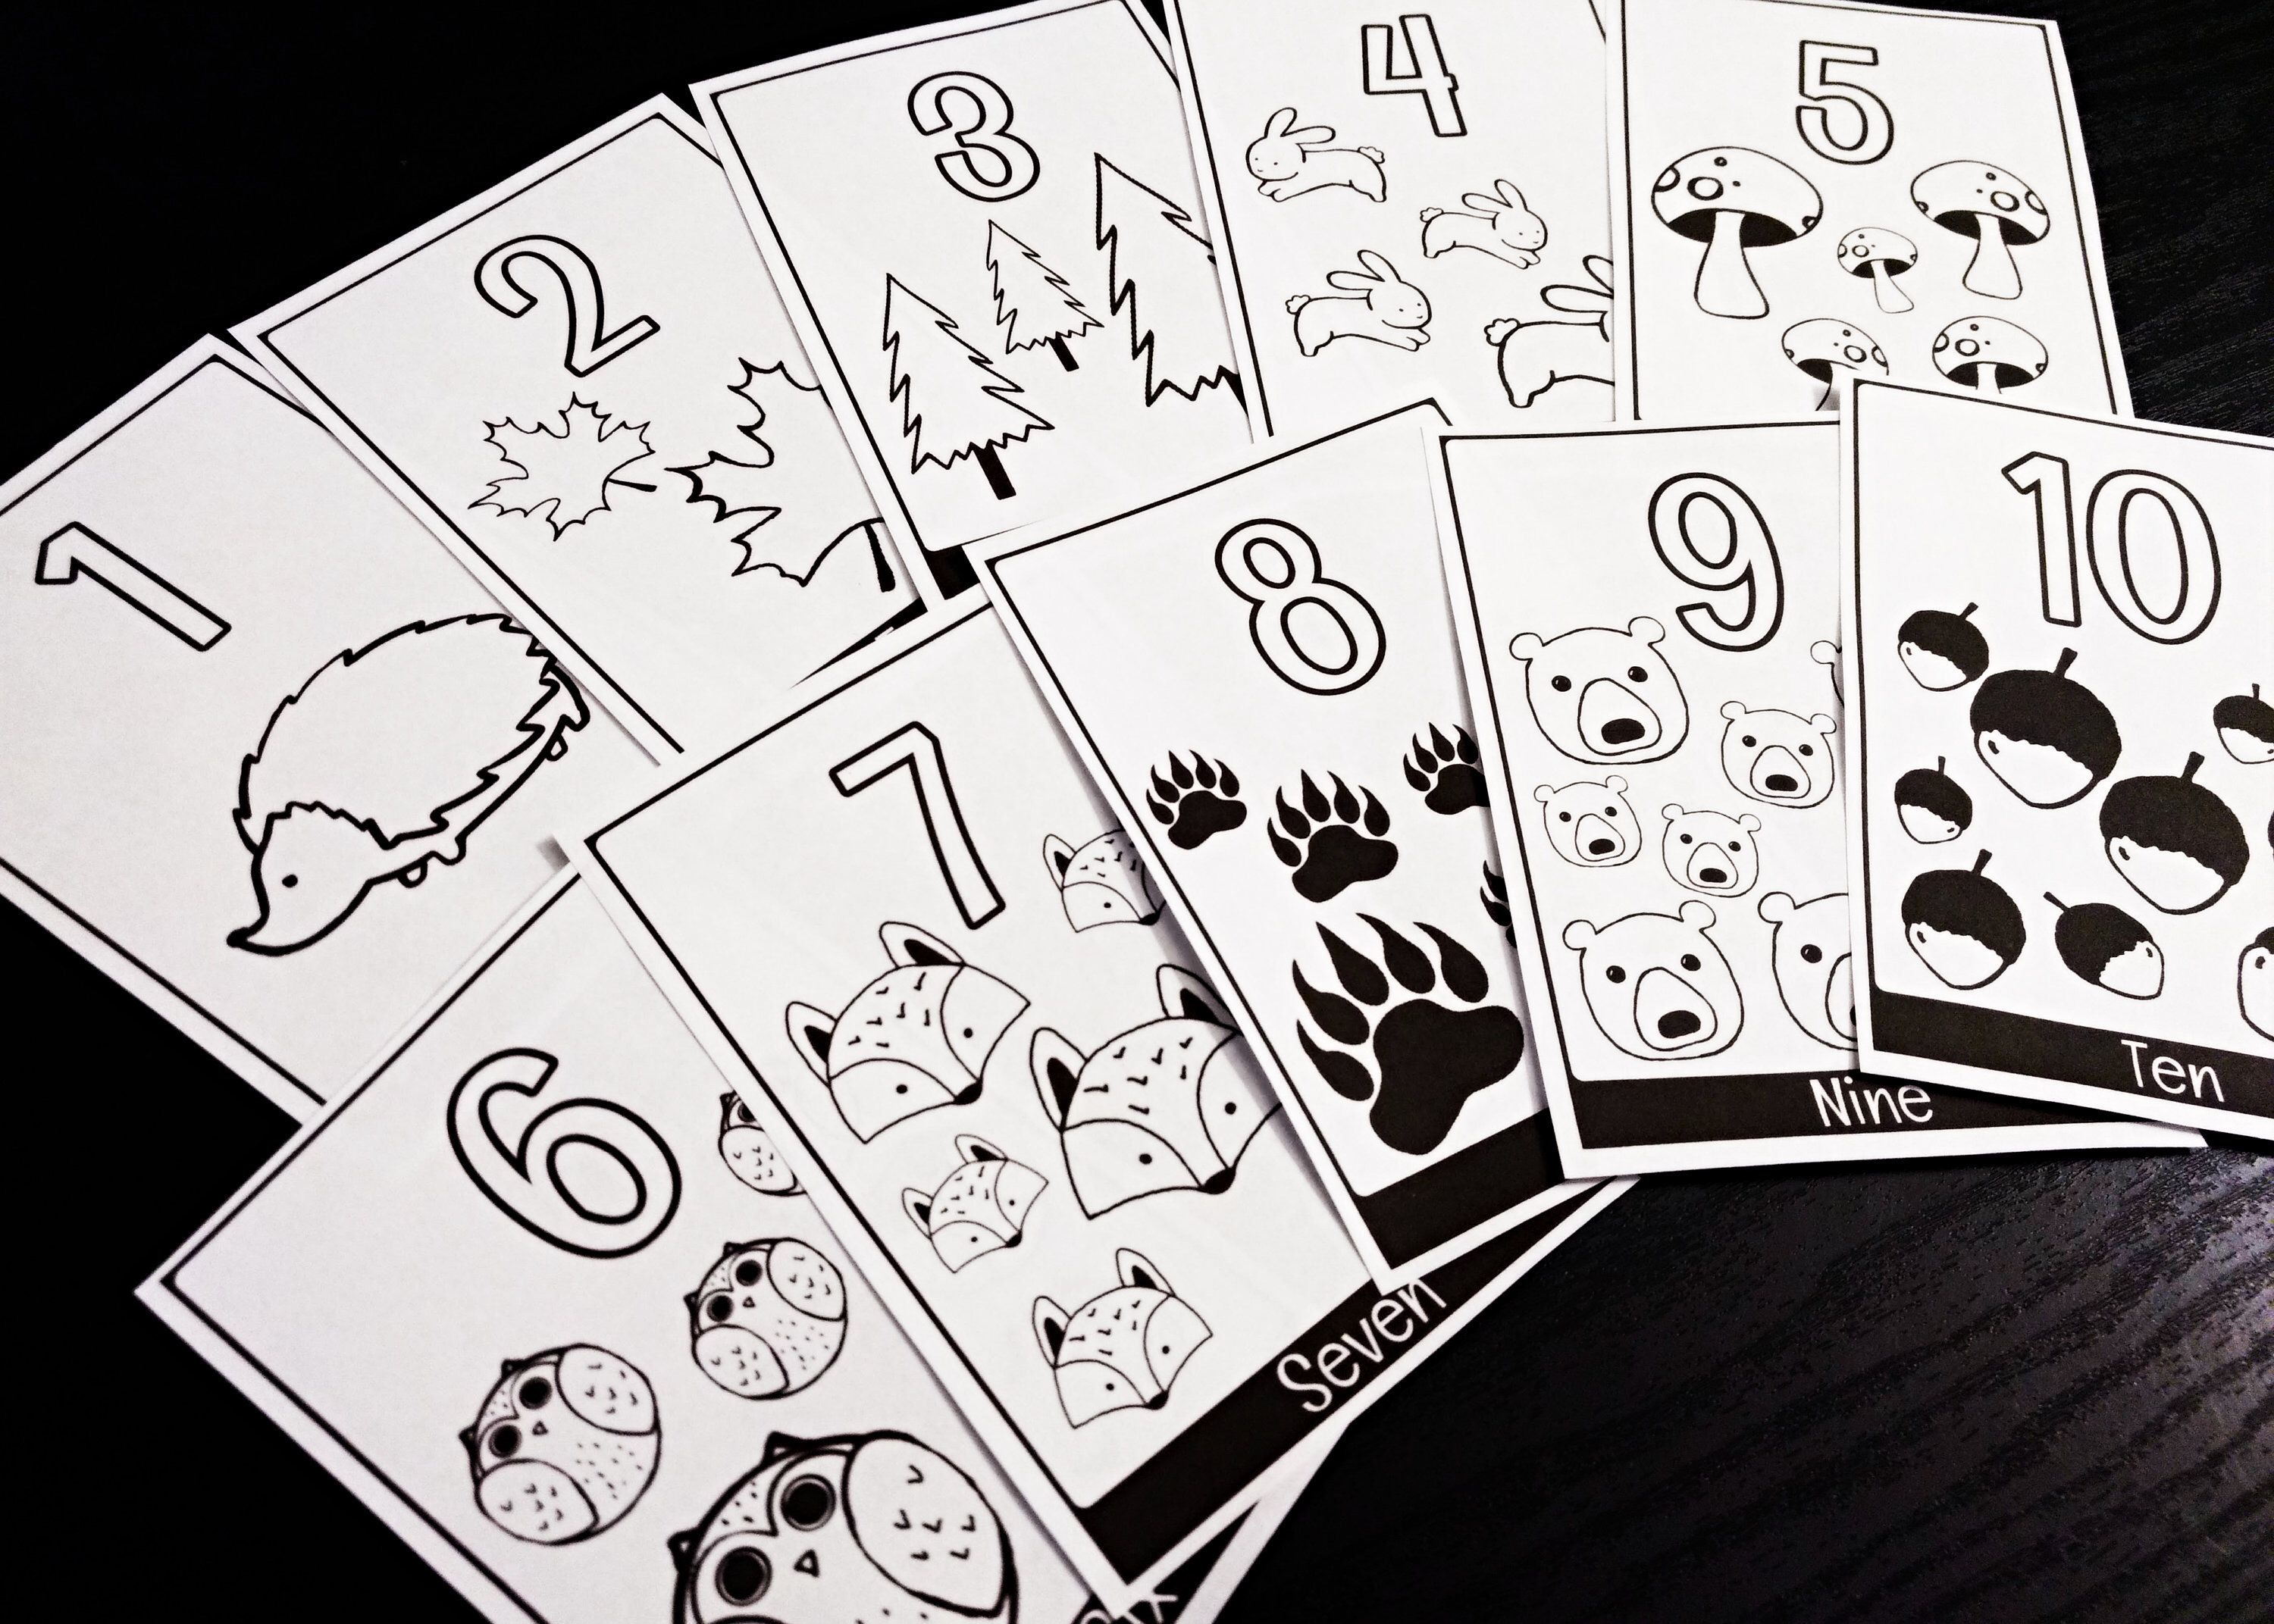 Woodland Flash Cards Printable Numbers Black And White Learning Cards Coloring Activity By Wainboughco On E Printable Numbers Learning Cards Color Activities